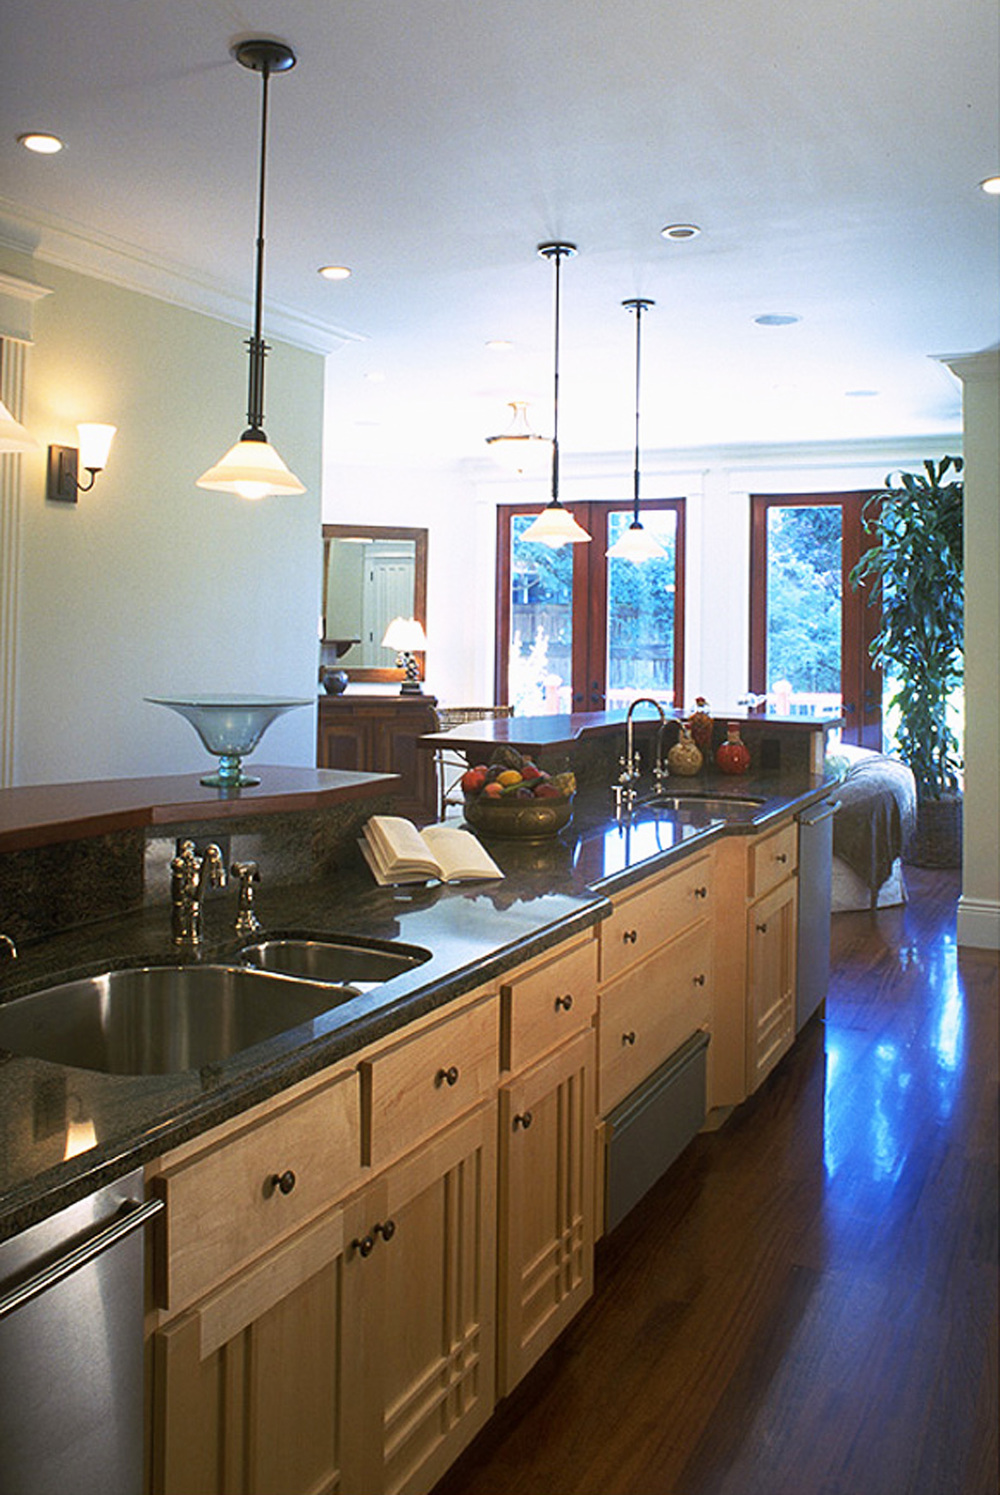 6 - 2821 Kitchen.jpg